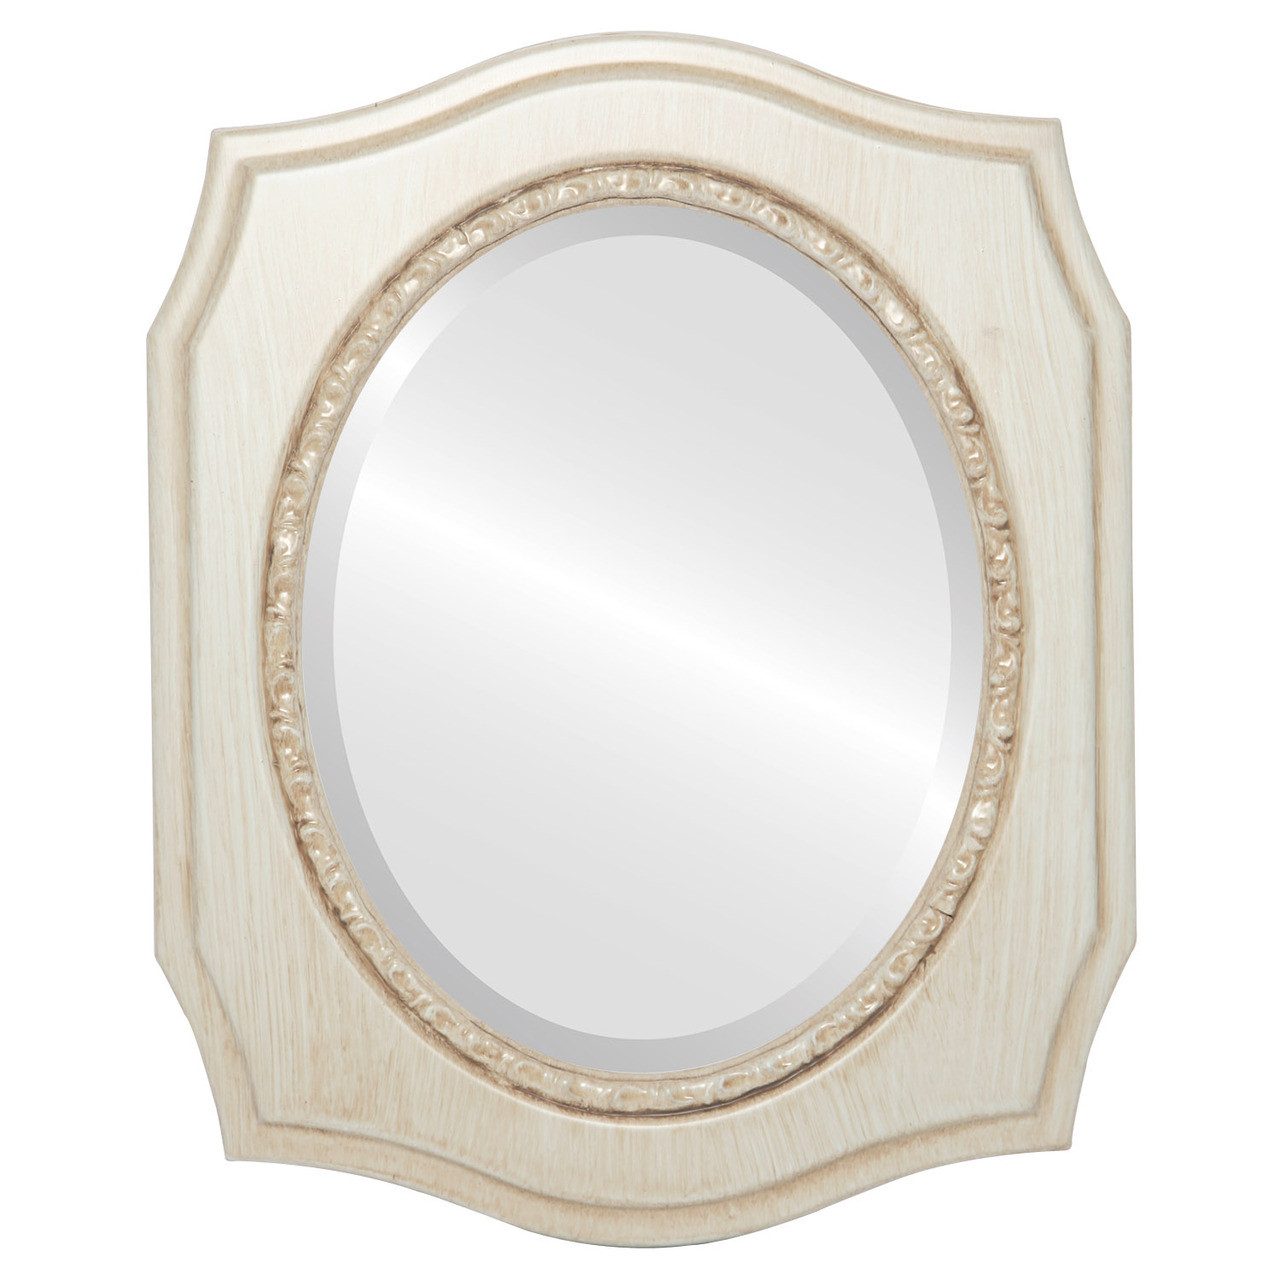 Oval mirrors rectangle mirrors round mirrors